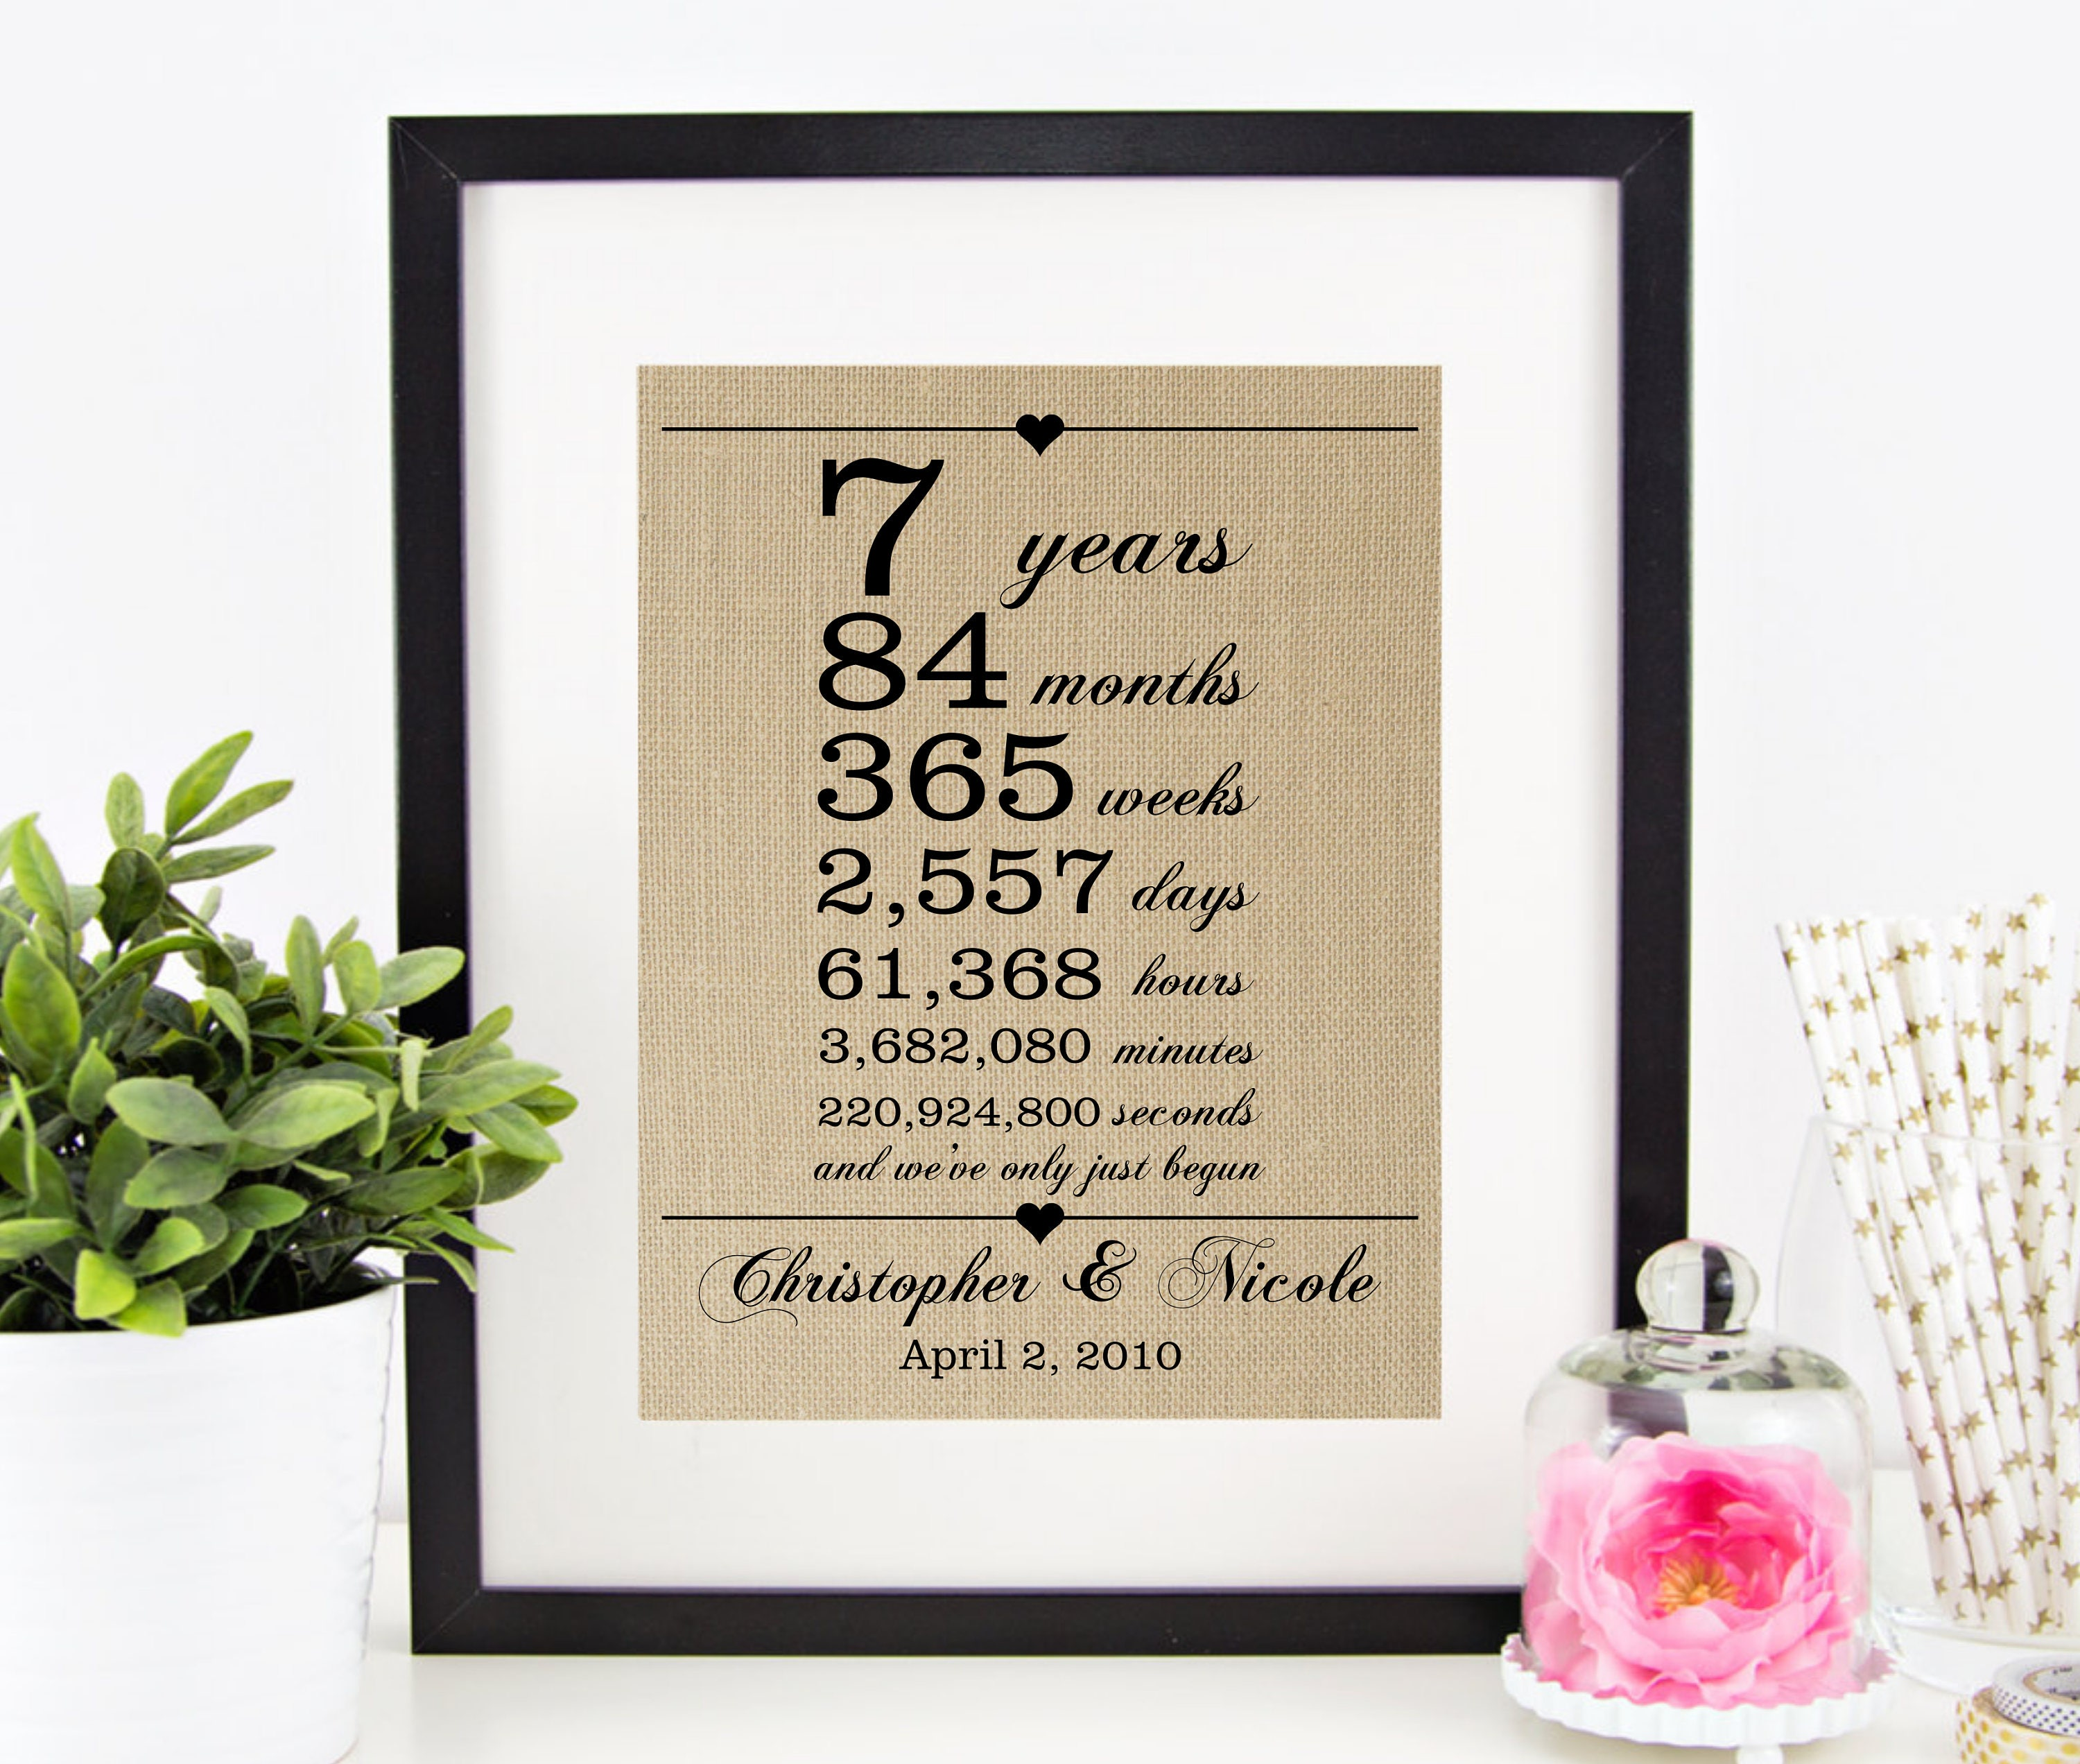 Wedding Gifts For 7 Years : Thick Wedding Planning Checklist Flat How To Plan A Wedding Wedding ...